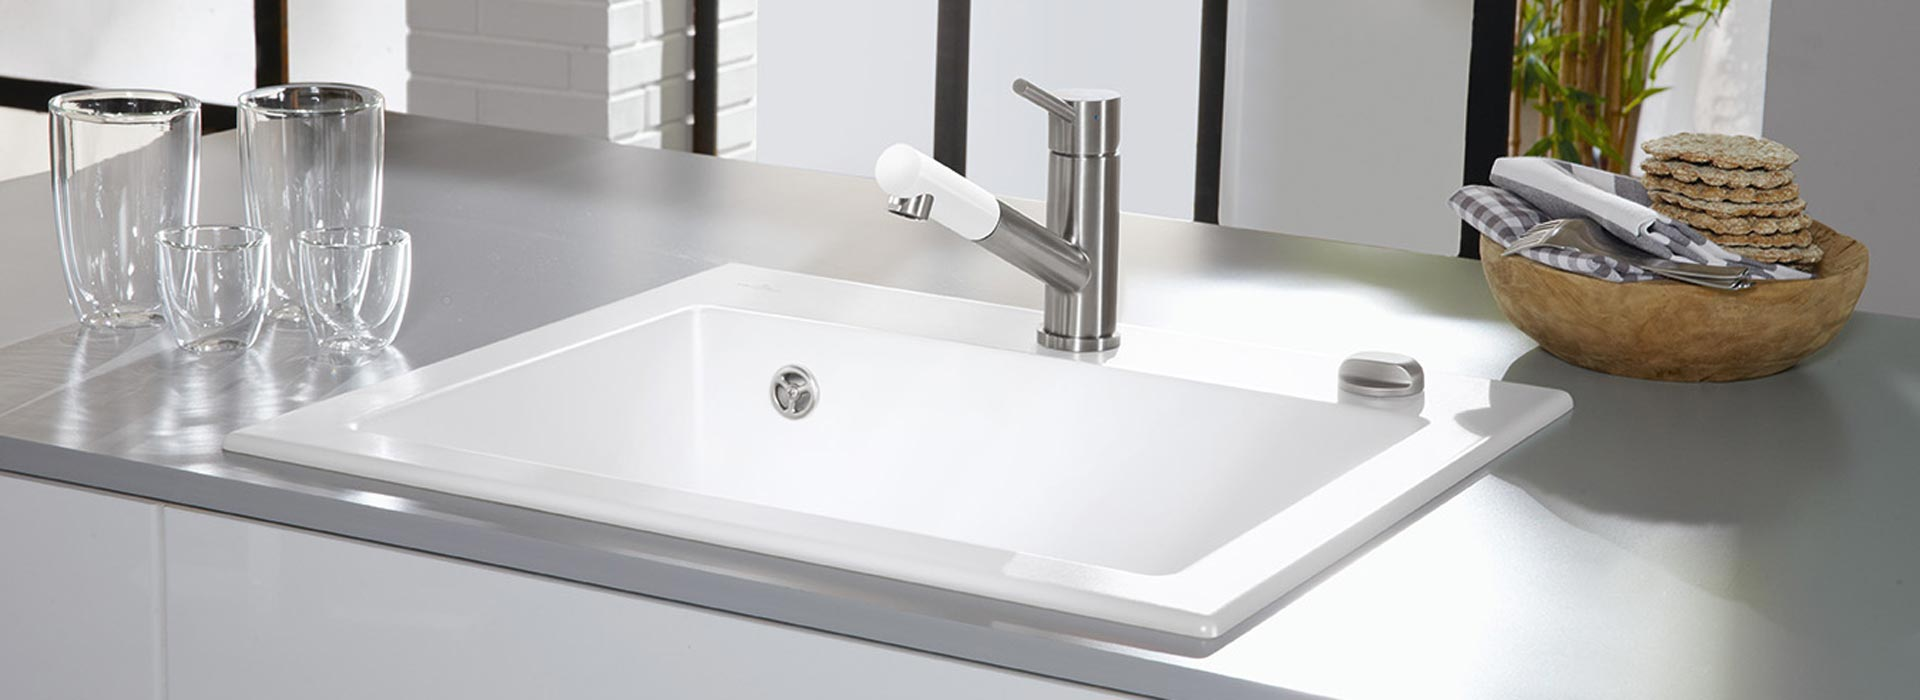 High Quality Ceramic Sink From Villeroy Amp Boch